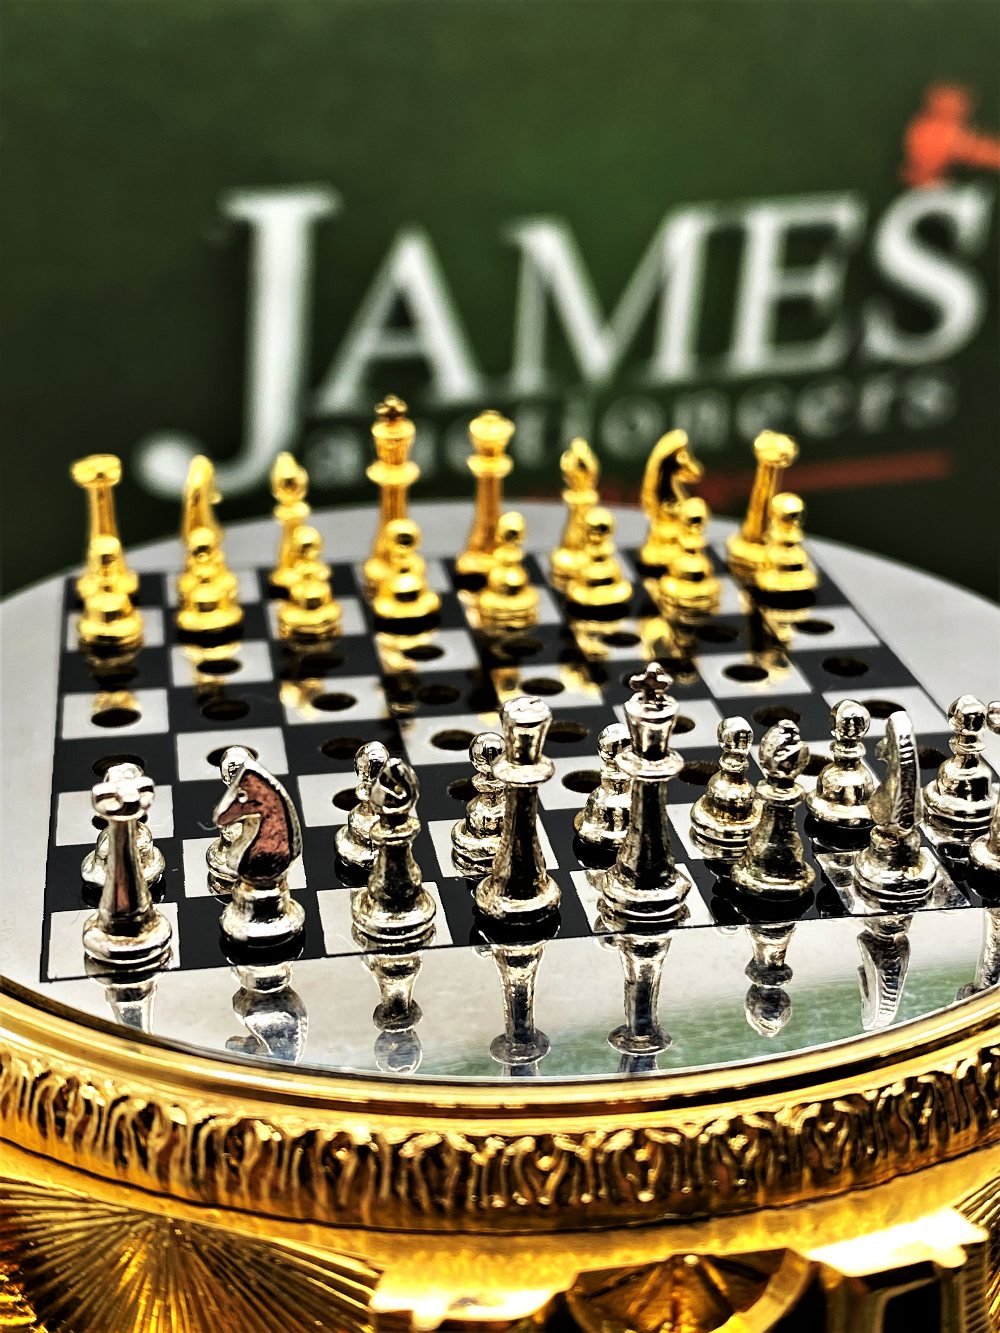 Franklin Mint House of Faberge 24 Carat Gold Imperial Jeweled Egg Chess Set - Image 5 of 11